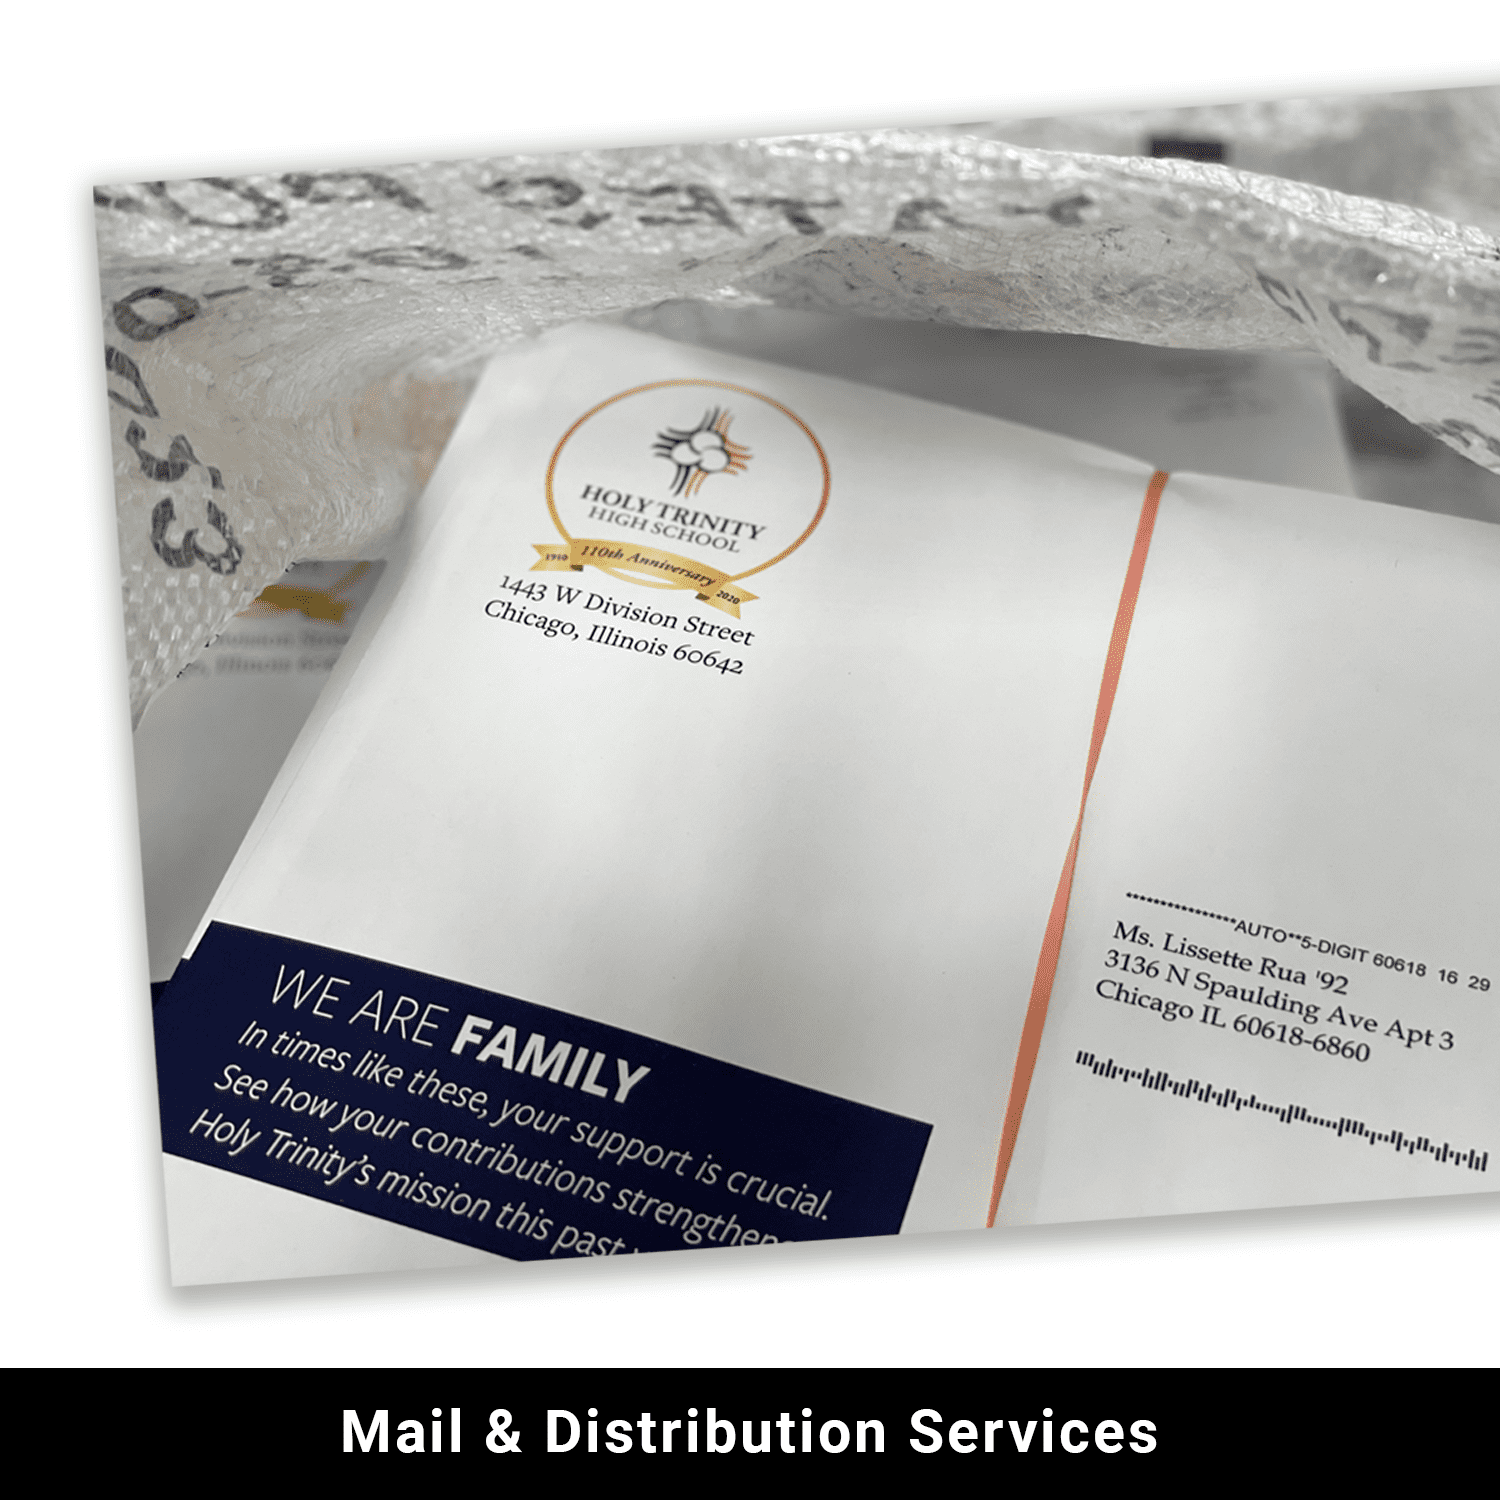 Mail and distribution services